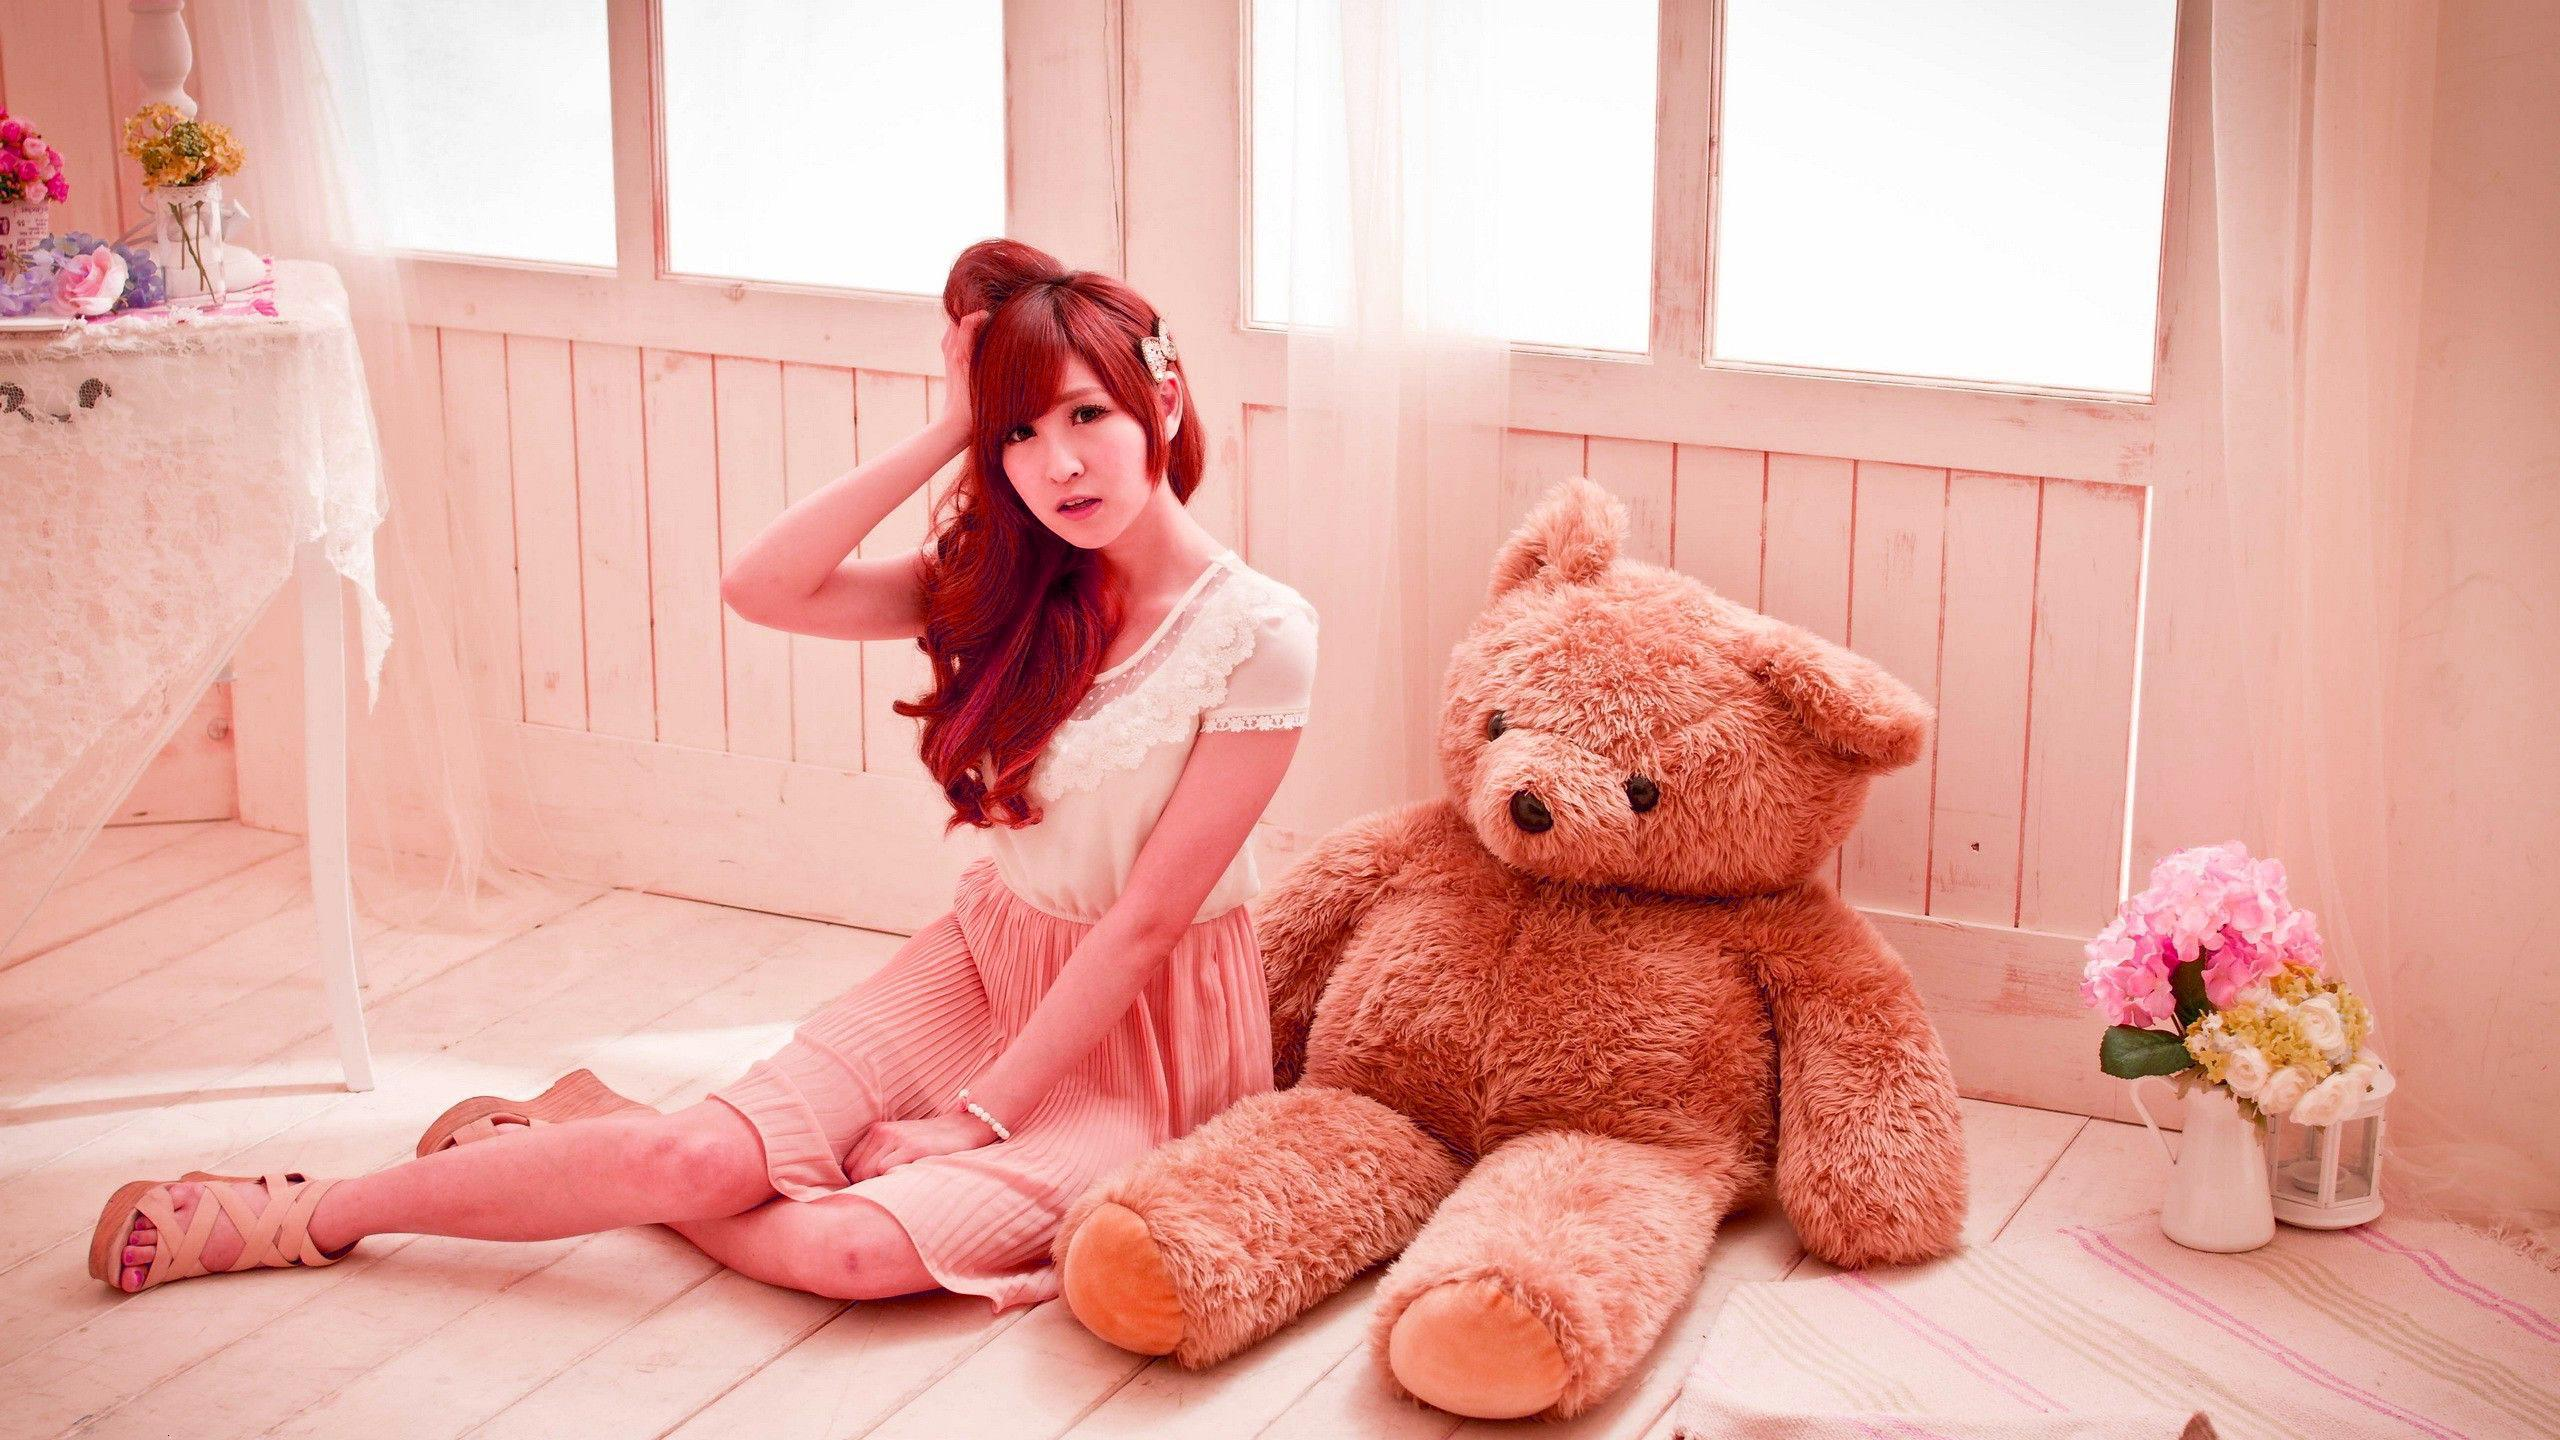 Innocent girl and the teddy